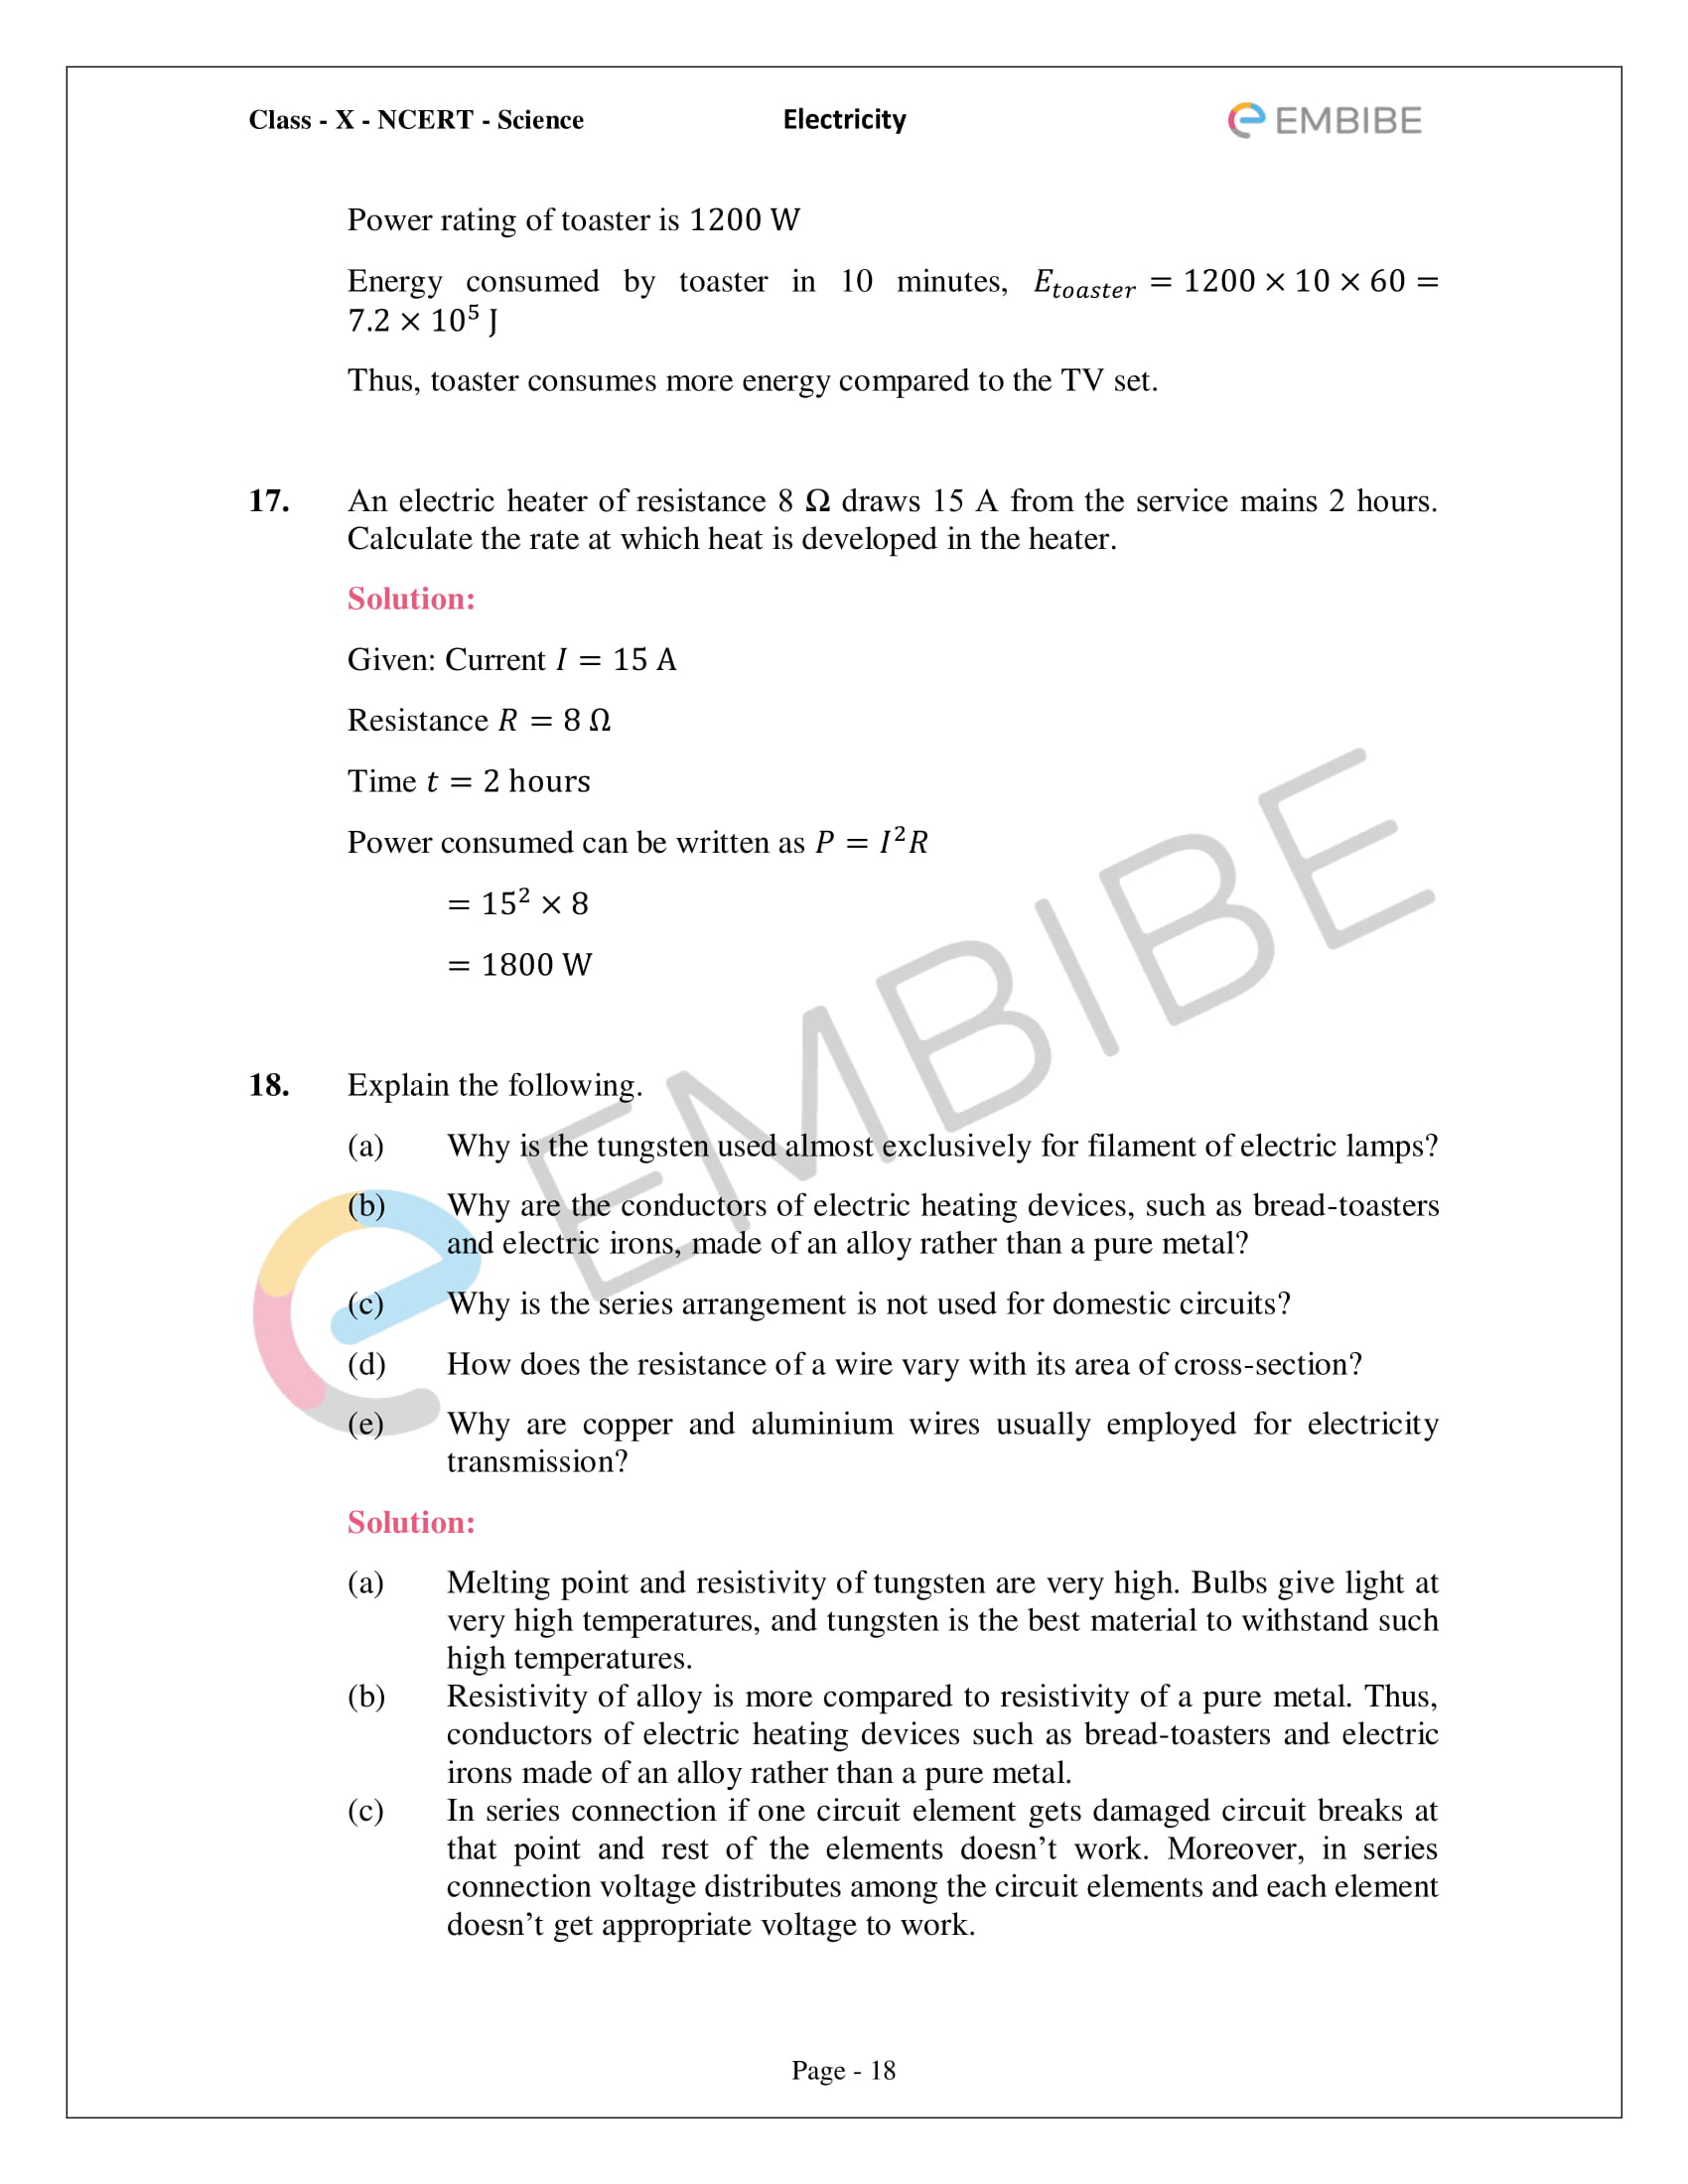 CBSE NCERT Solutions For Class 10 Science Chapter 12 - Electricity - 18